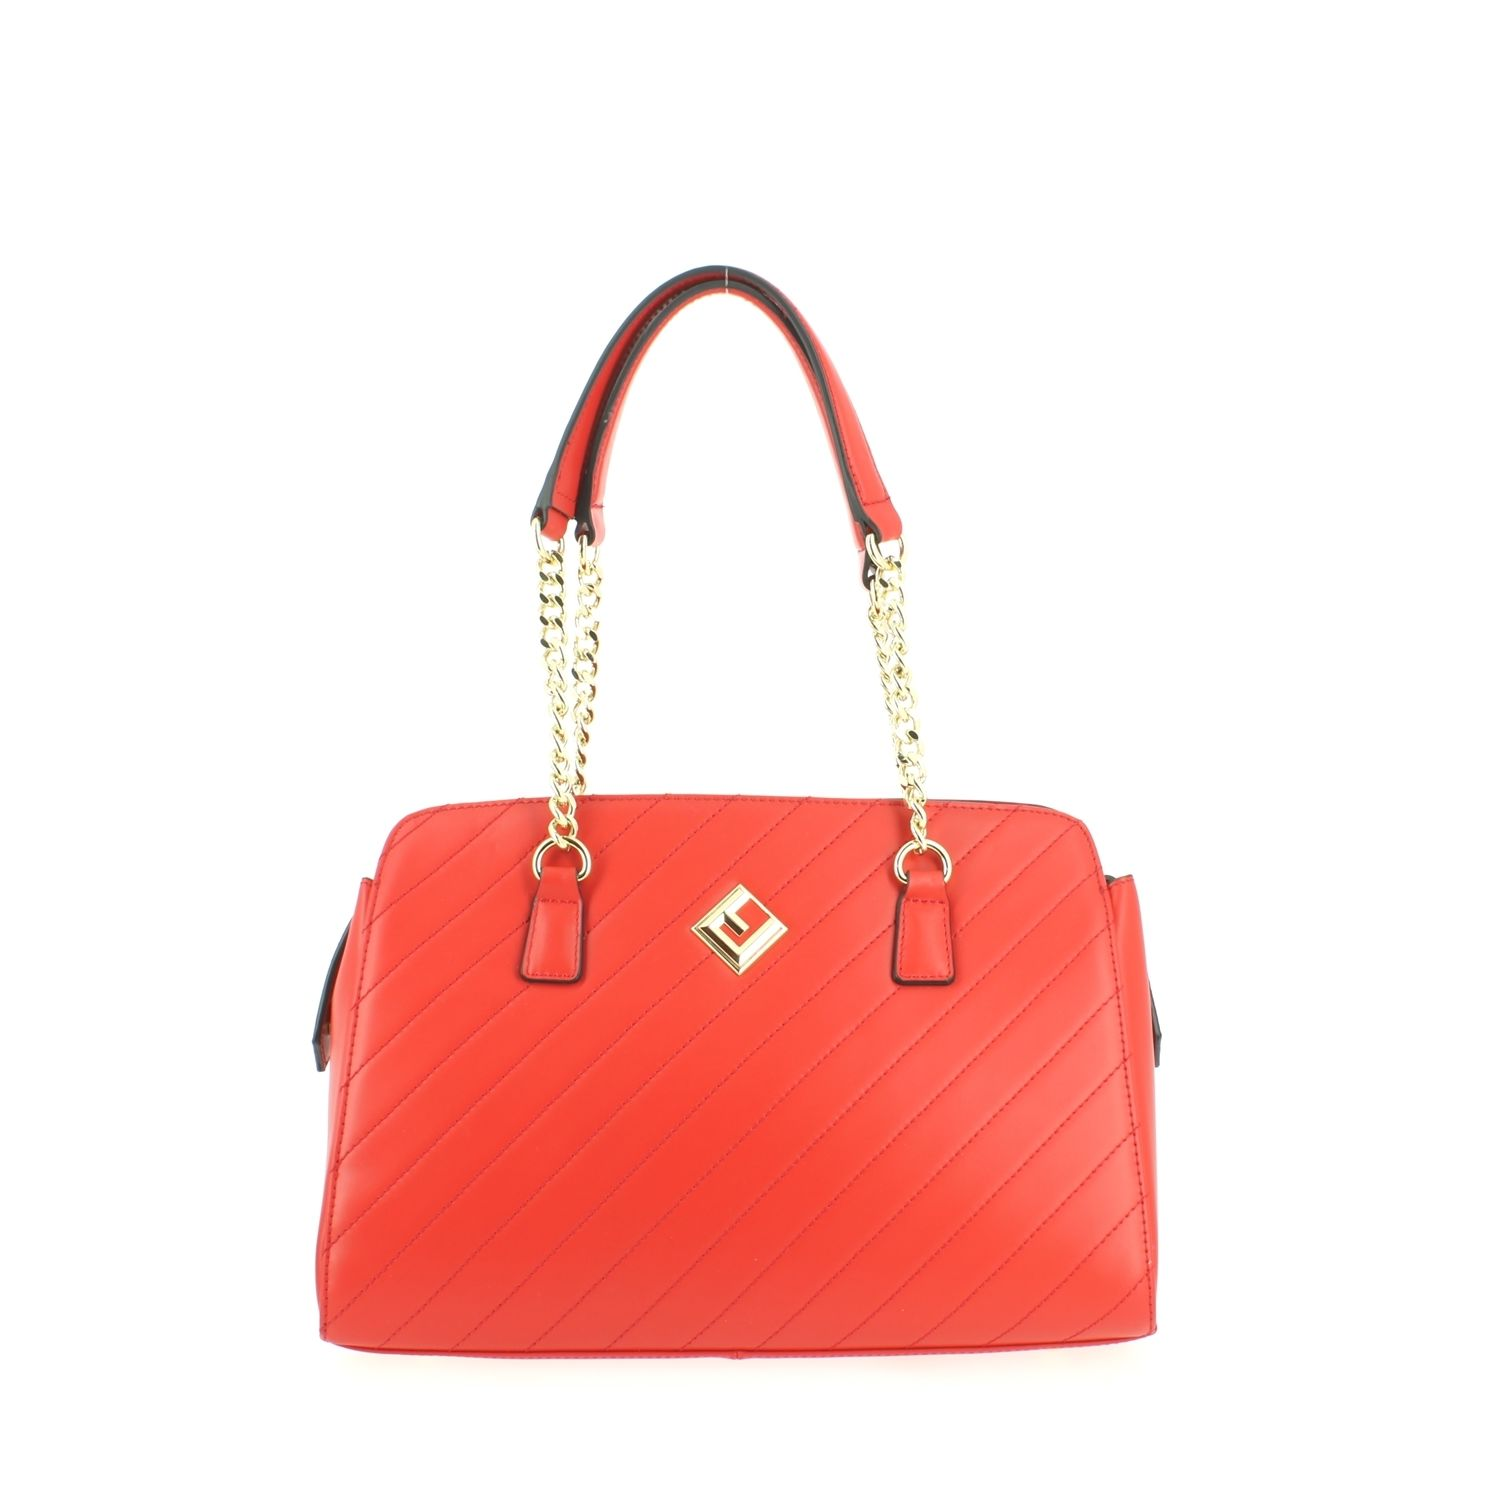 40596ede06 TED LAPIDUS- Sac shopping Zurich Rouge